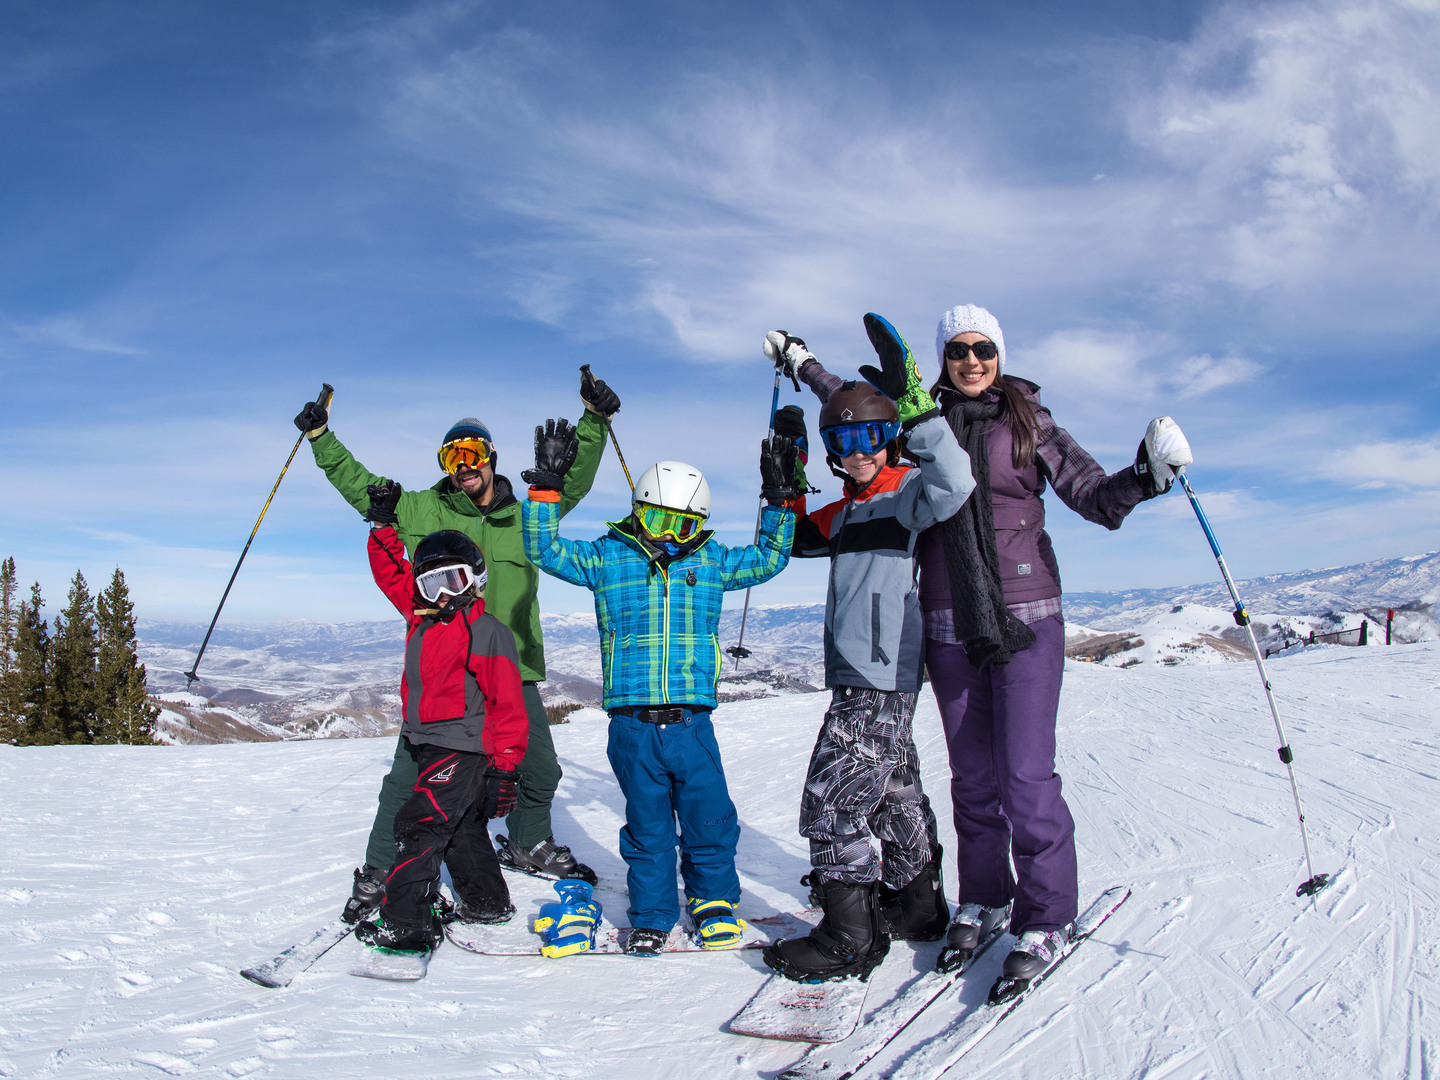 Marriott's MountainSide Mountain Top Photo Op. Marriott's MountainSide is located in Park City, Utah United States.